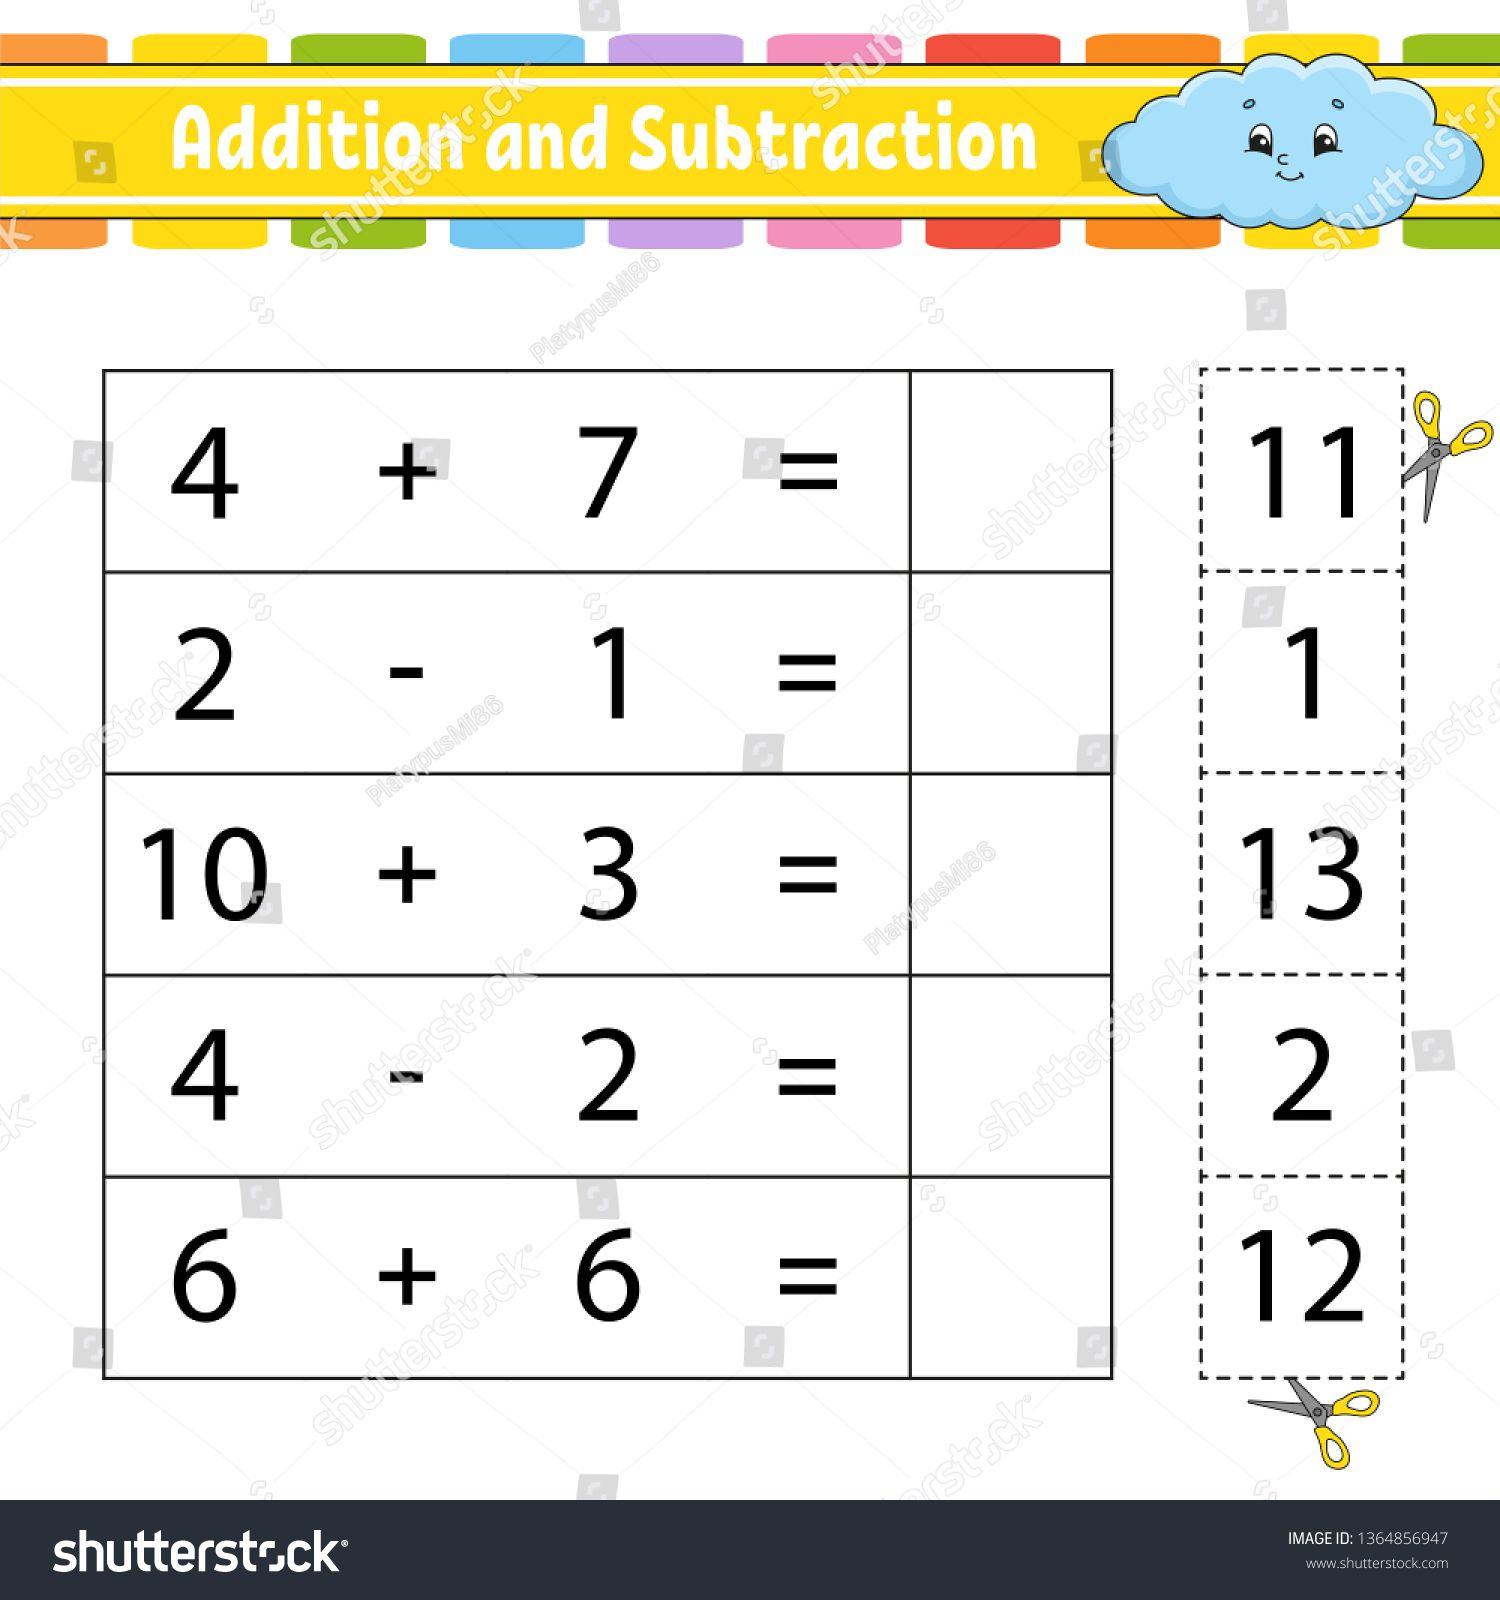 Addition And Subtraction Task For Kids Education Developing Worksheet Activity Page Game For Children Addition And Subtraction Funny Character Subtraction Addition and subtraction with pictures